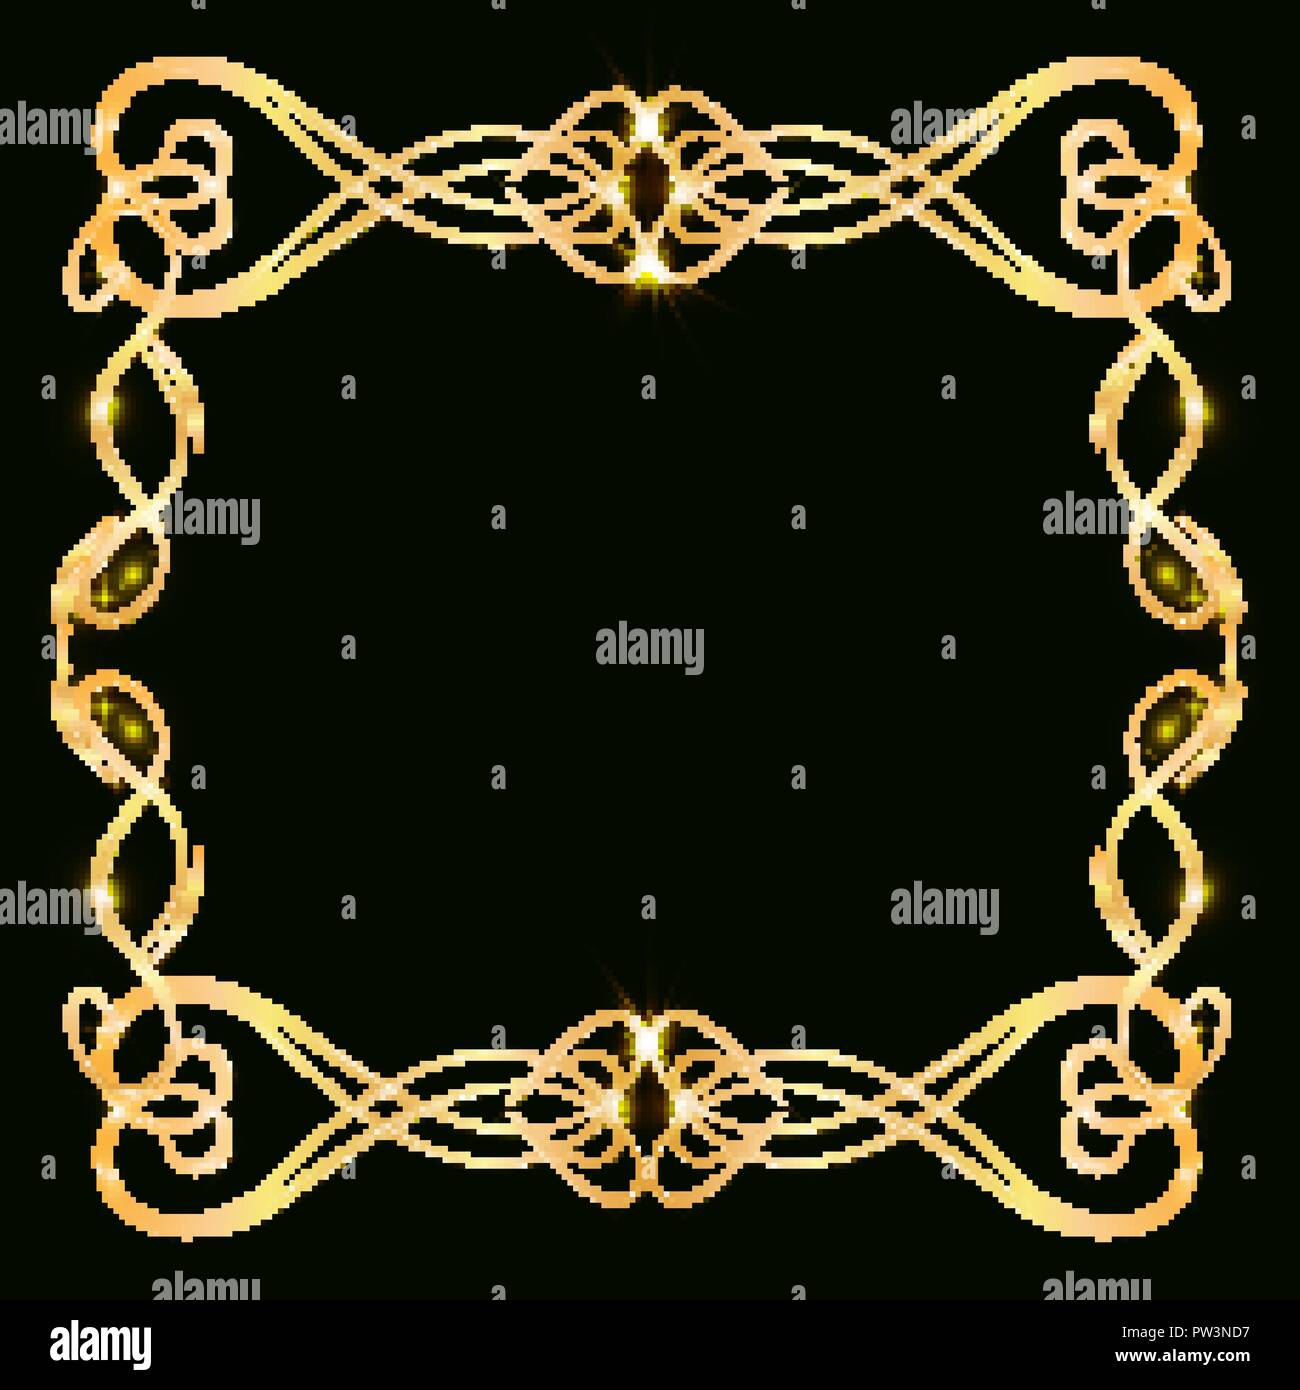 https www alamy com decorative gold frame with gold elements on a dark background for invitation cards wedding card decor blank for the cover design image221973507 html